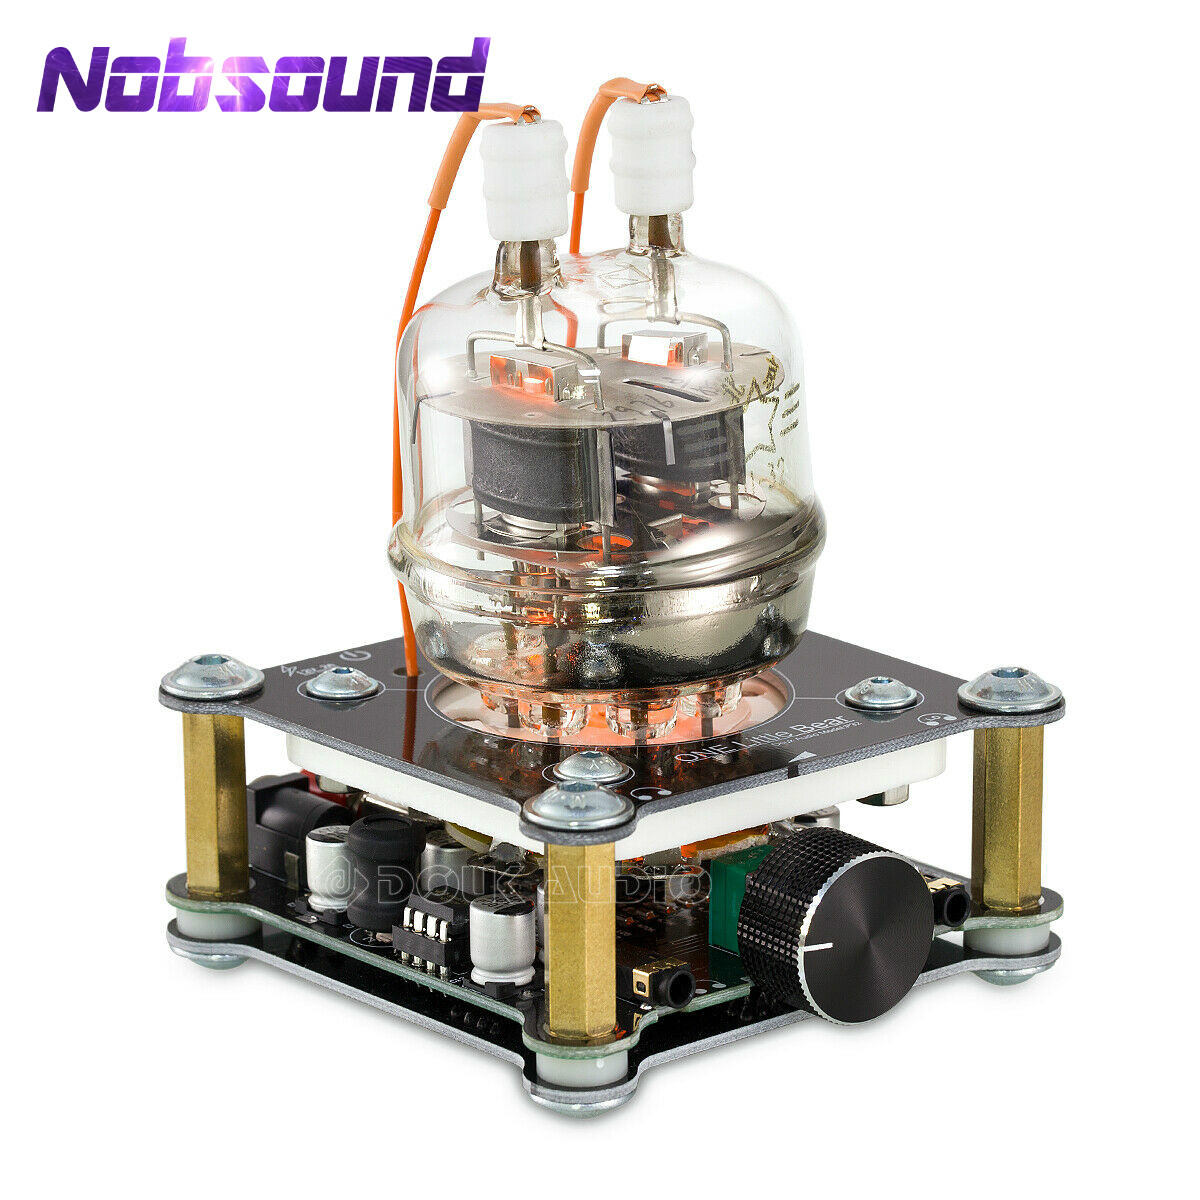 Nobsound Mini FU32(832A) Valve Tube Amplifier Hi-Fi Stereo Preamp Desktop Tube Headphone Amp